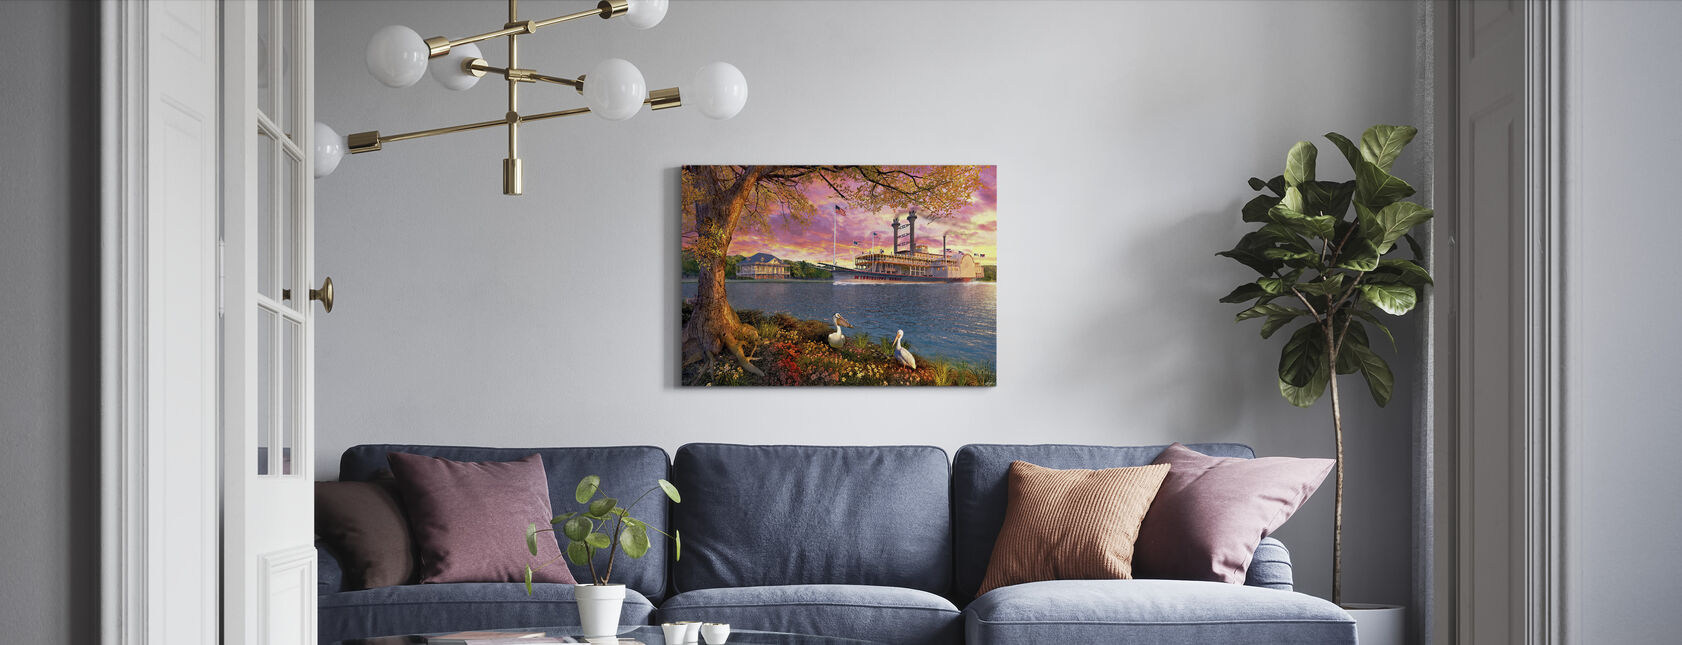 Mississippi Queen - Canvas print - Living Room